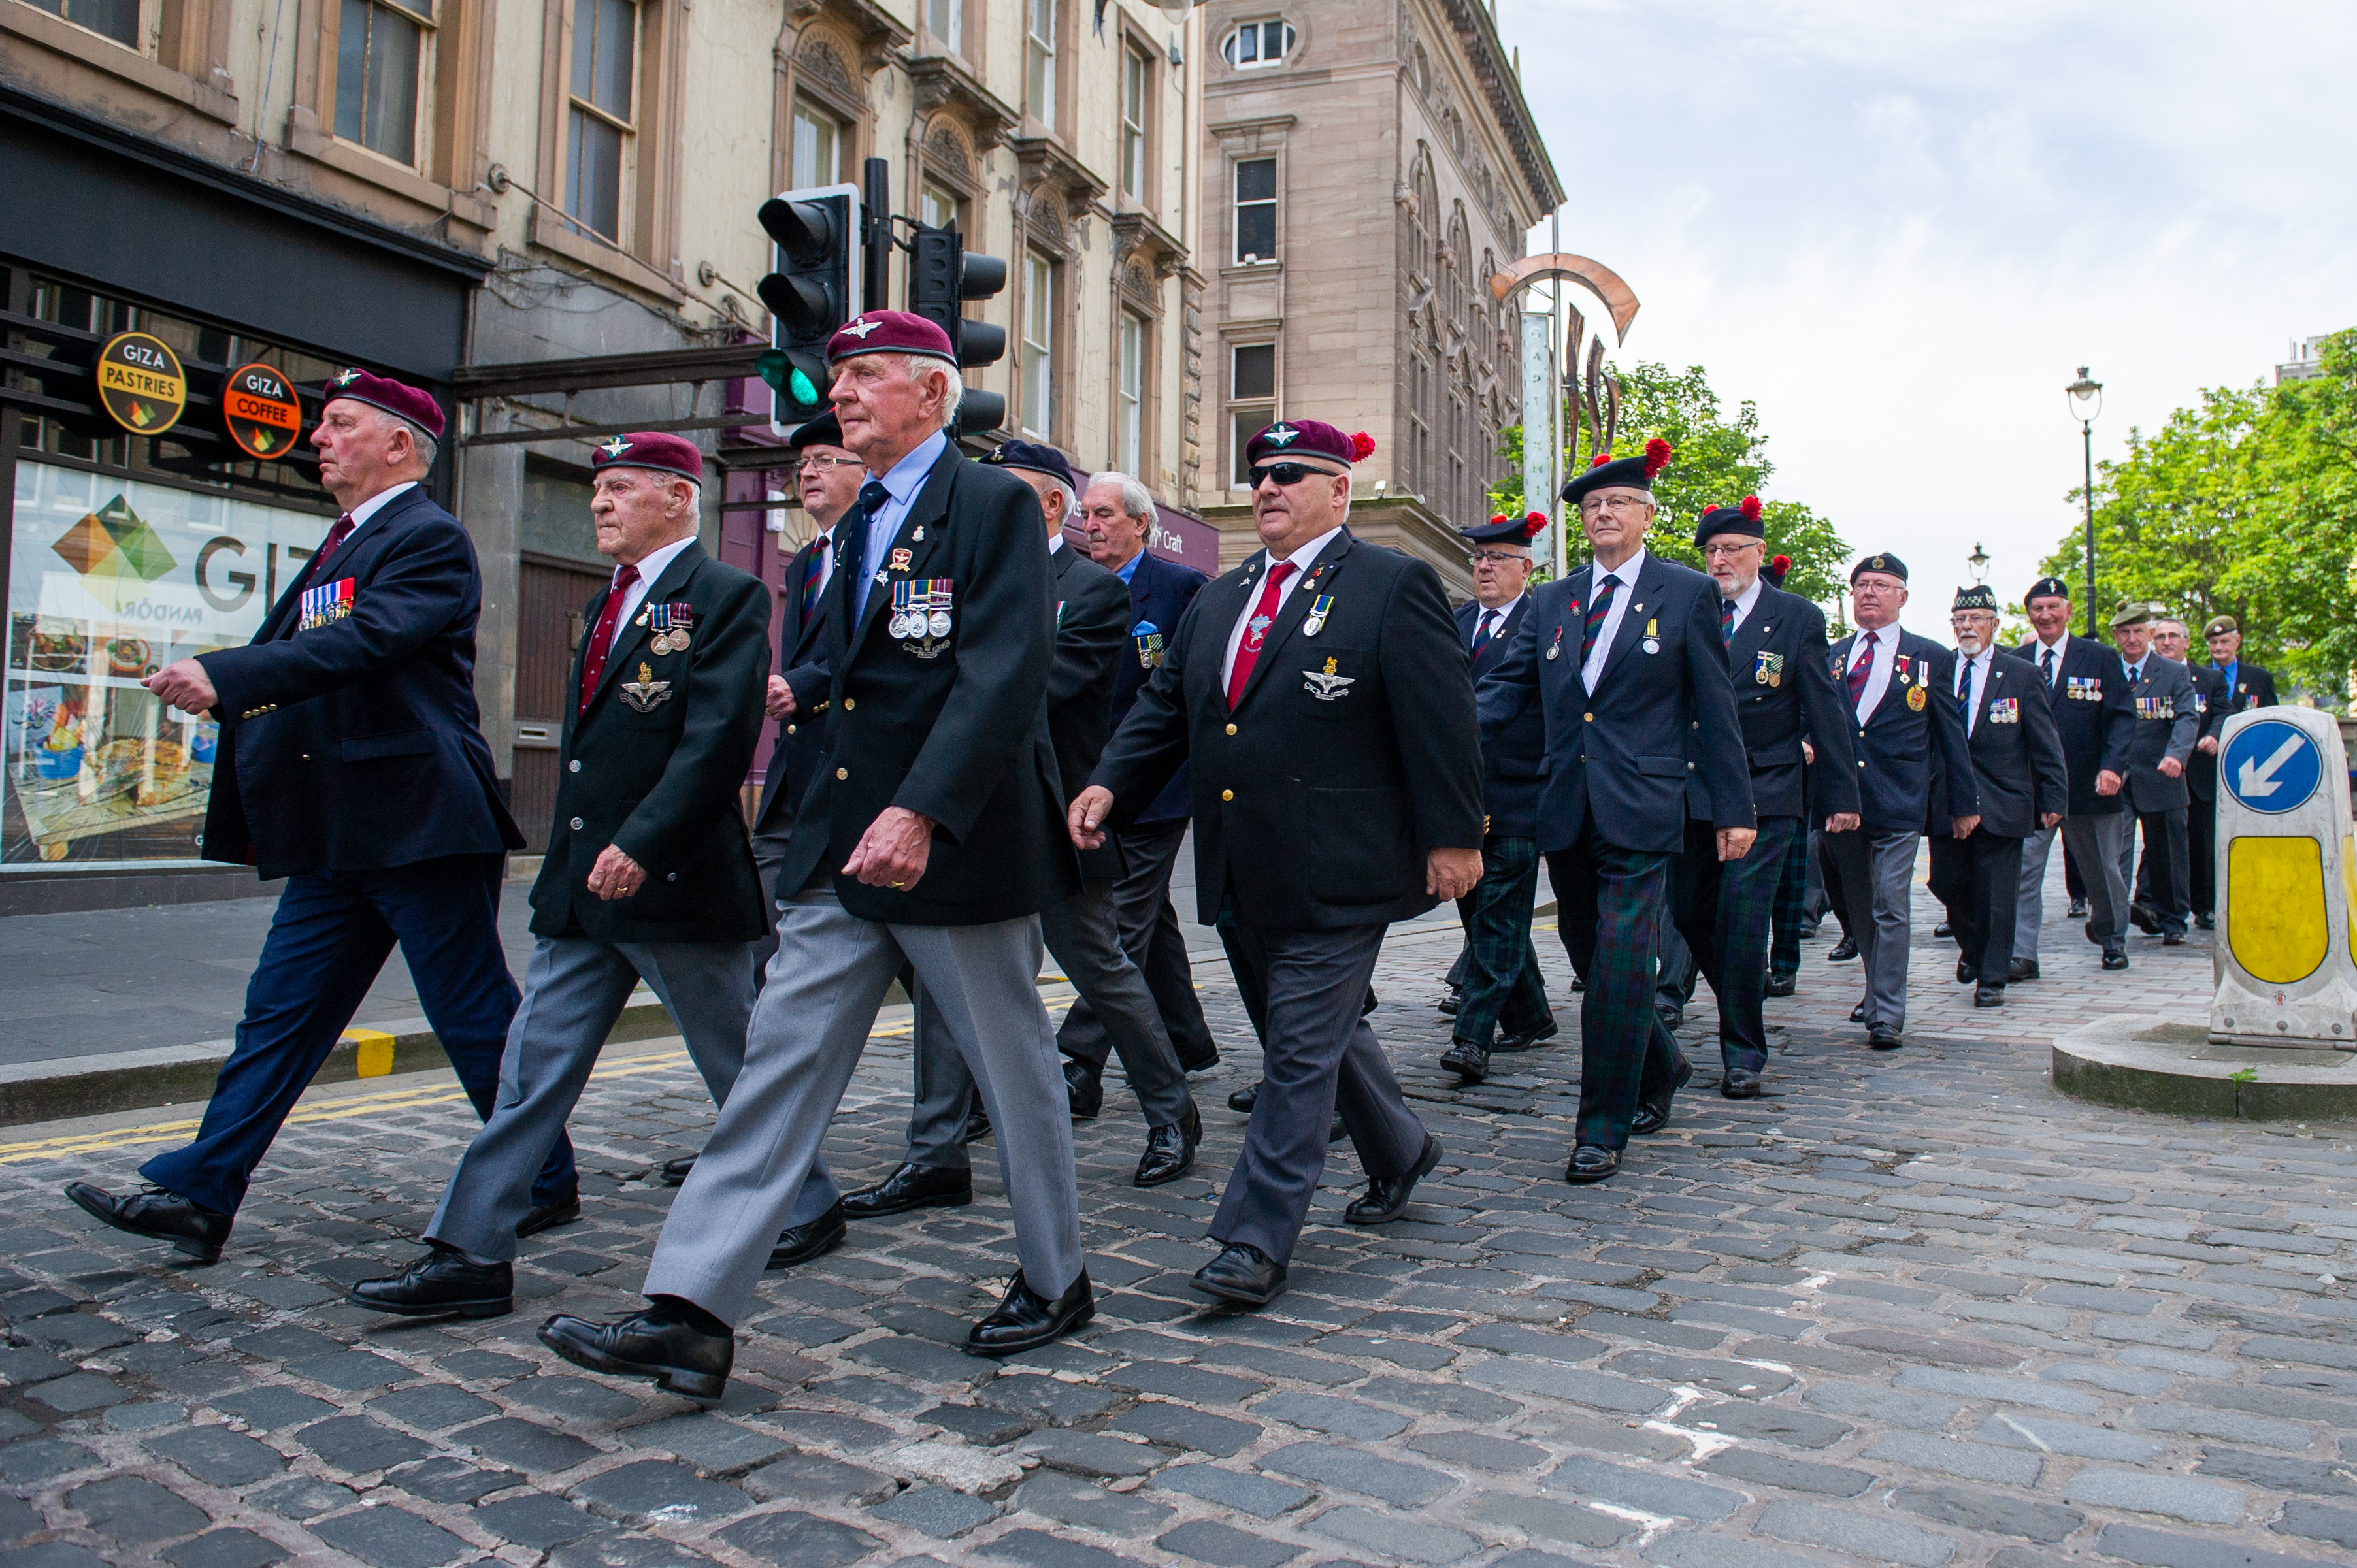 VIDEO: Dundee veterans celebrate city's proud history with Armed Forces Day parade - The Courier